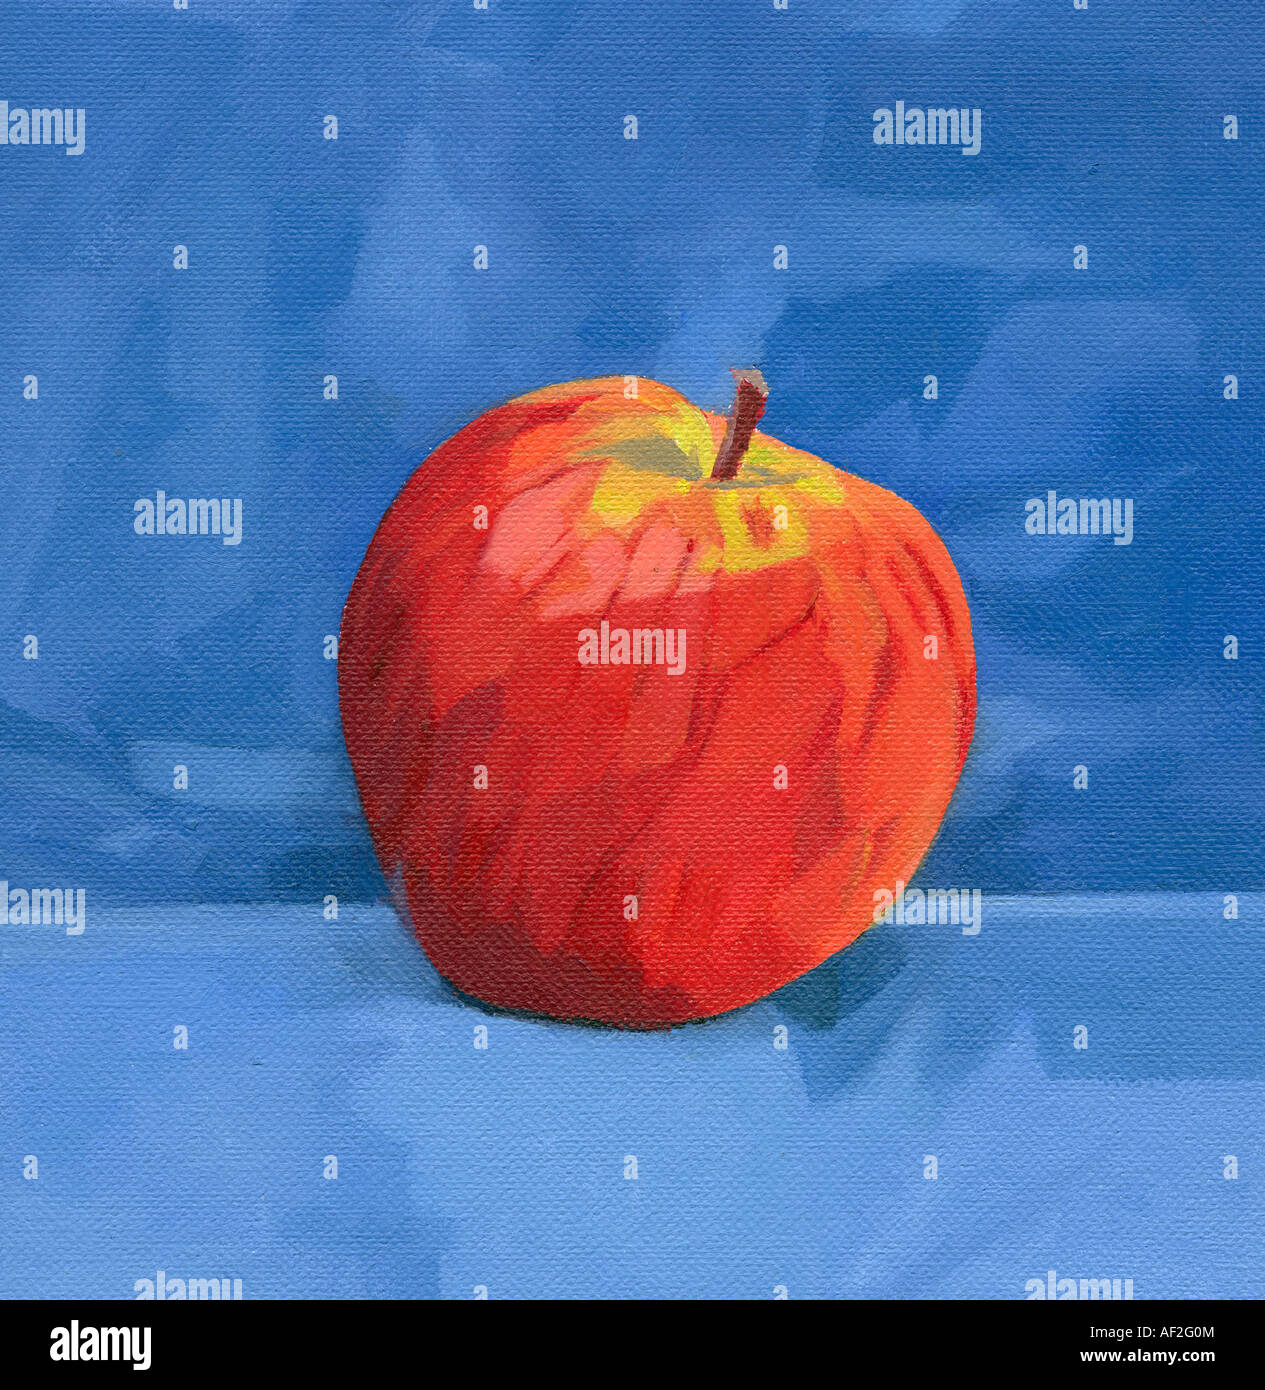 Apple painting - Stock Image